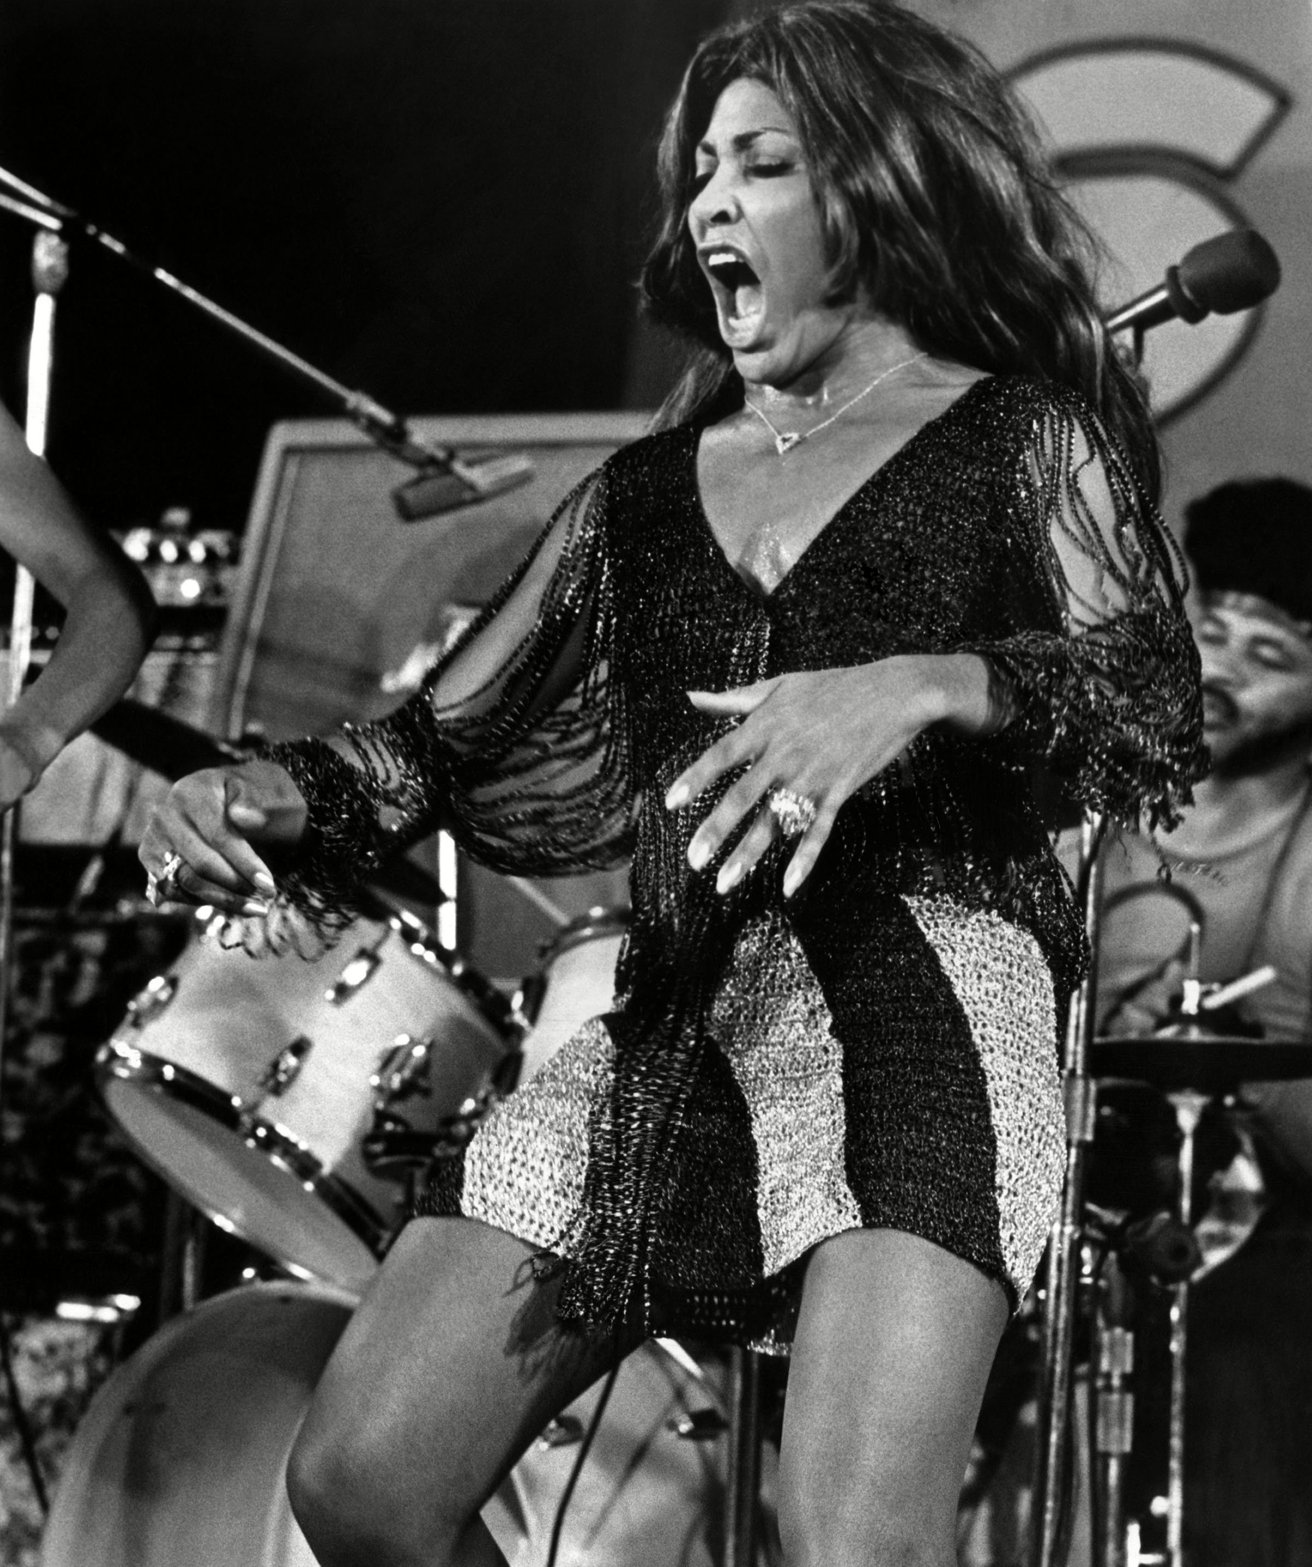 Tina Turner is featured in